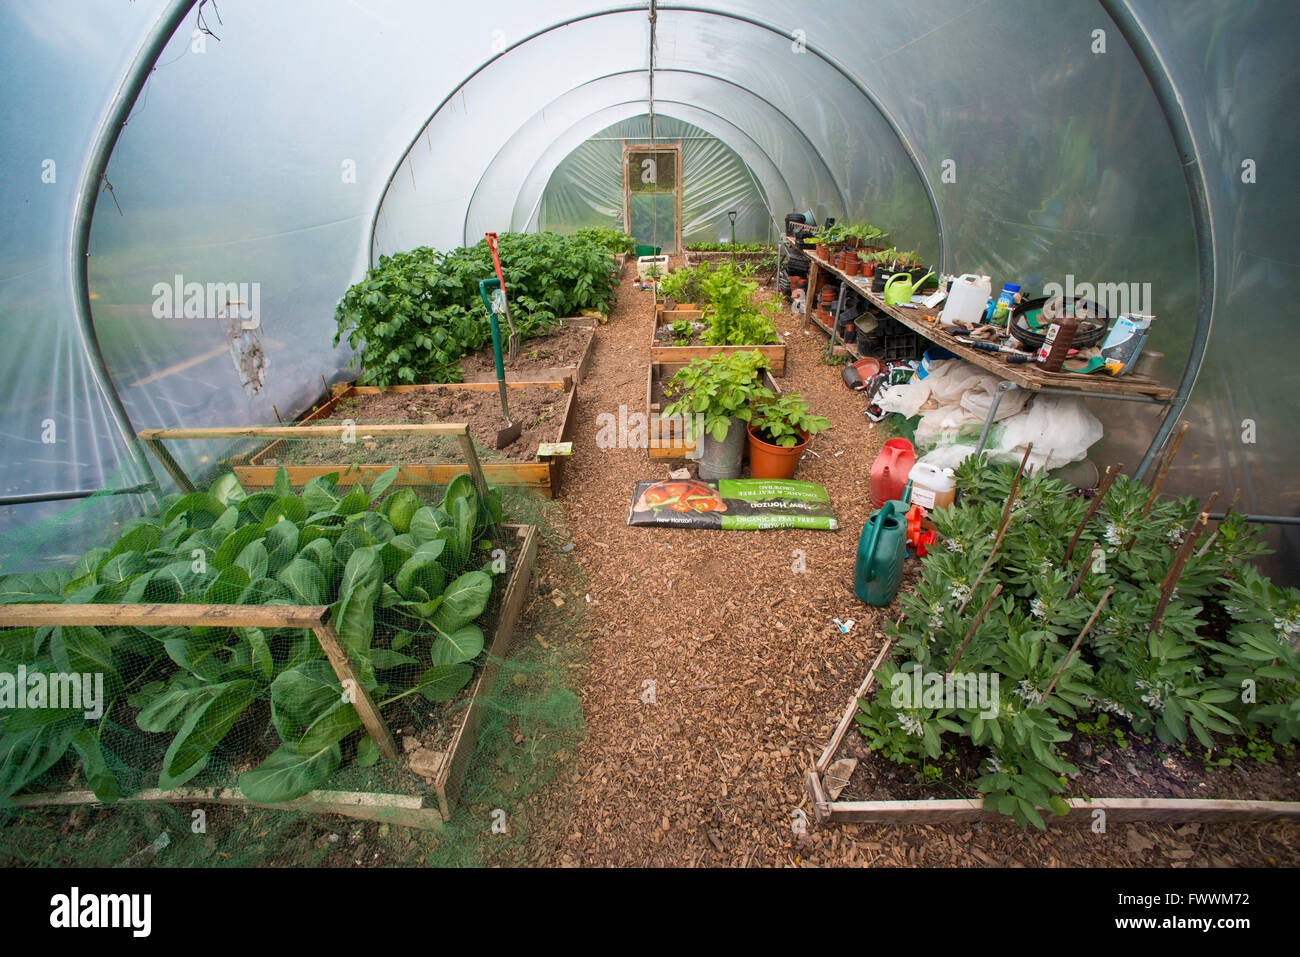 A polytunnel in summer weather, Shropshire, England. - Stock Image